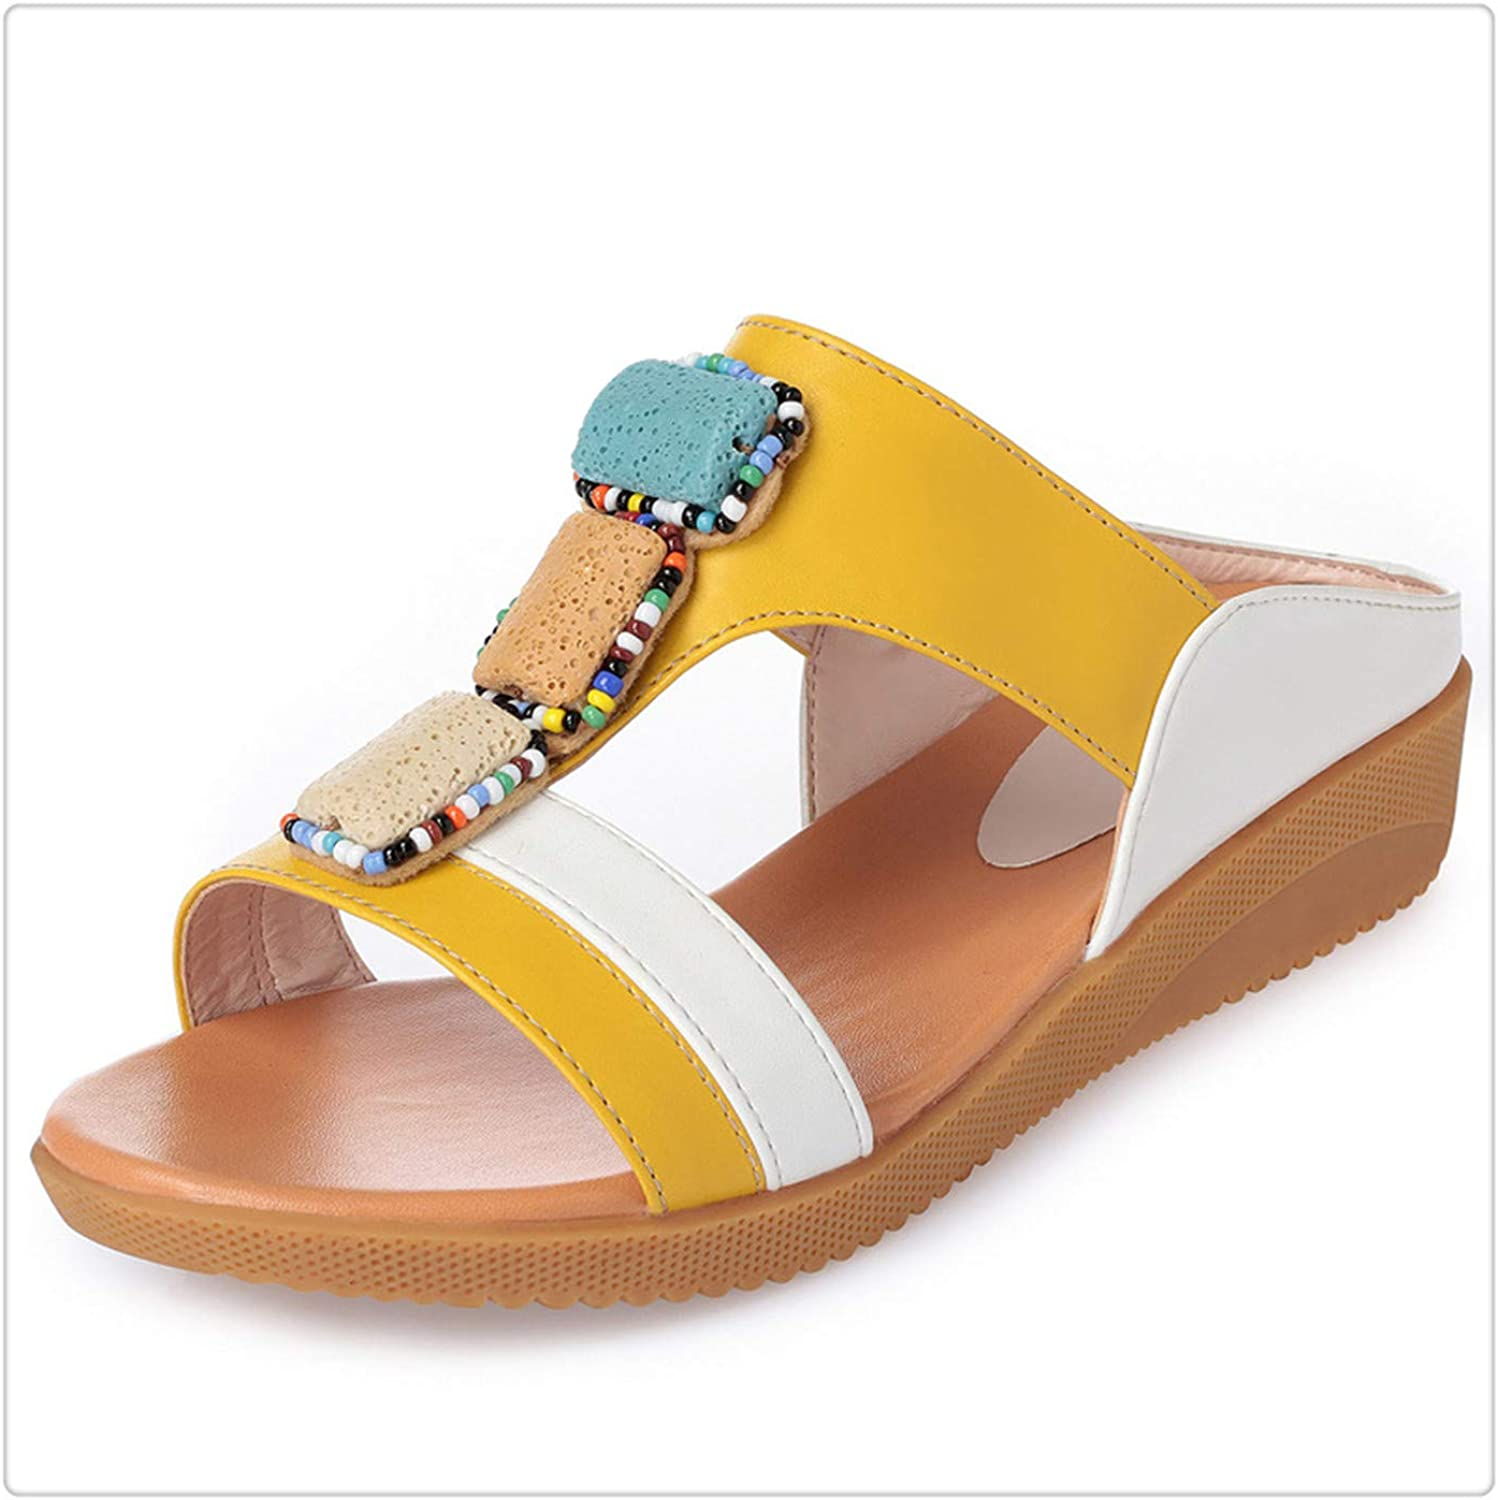 BIONGTY& 2019 New Summer Female Sandals and Slippers Mixed colors Beaded Wild Fashion Sandals Women shoes Casual Sandals Flat Plus Size Yellow 9